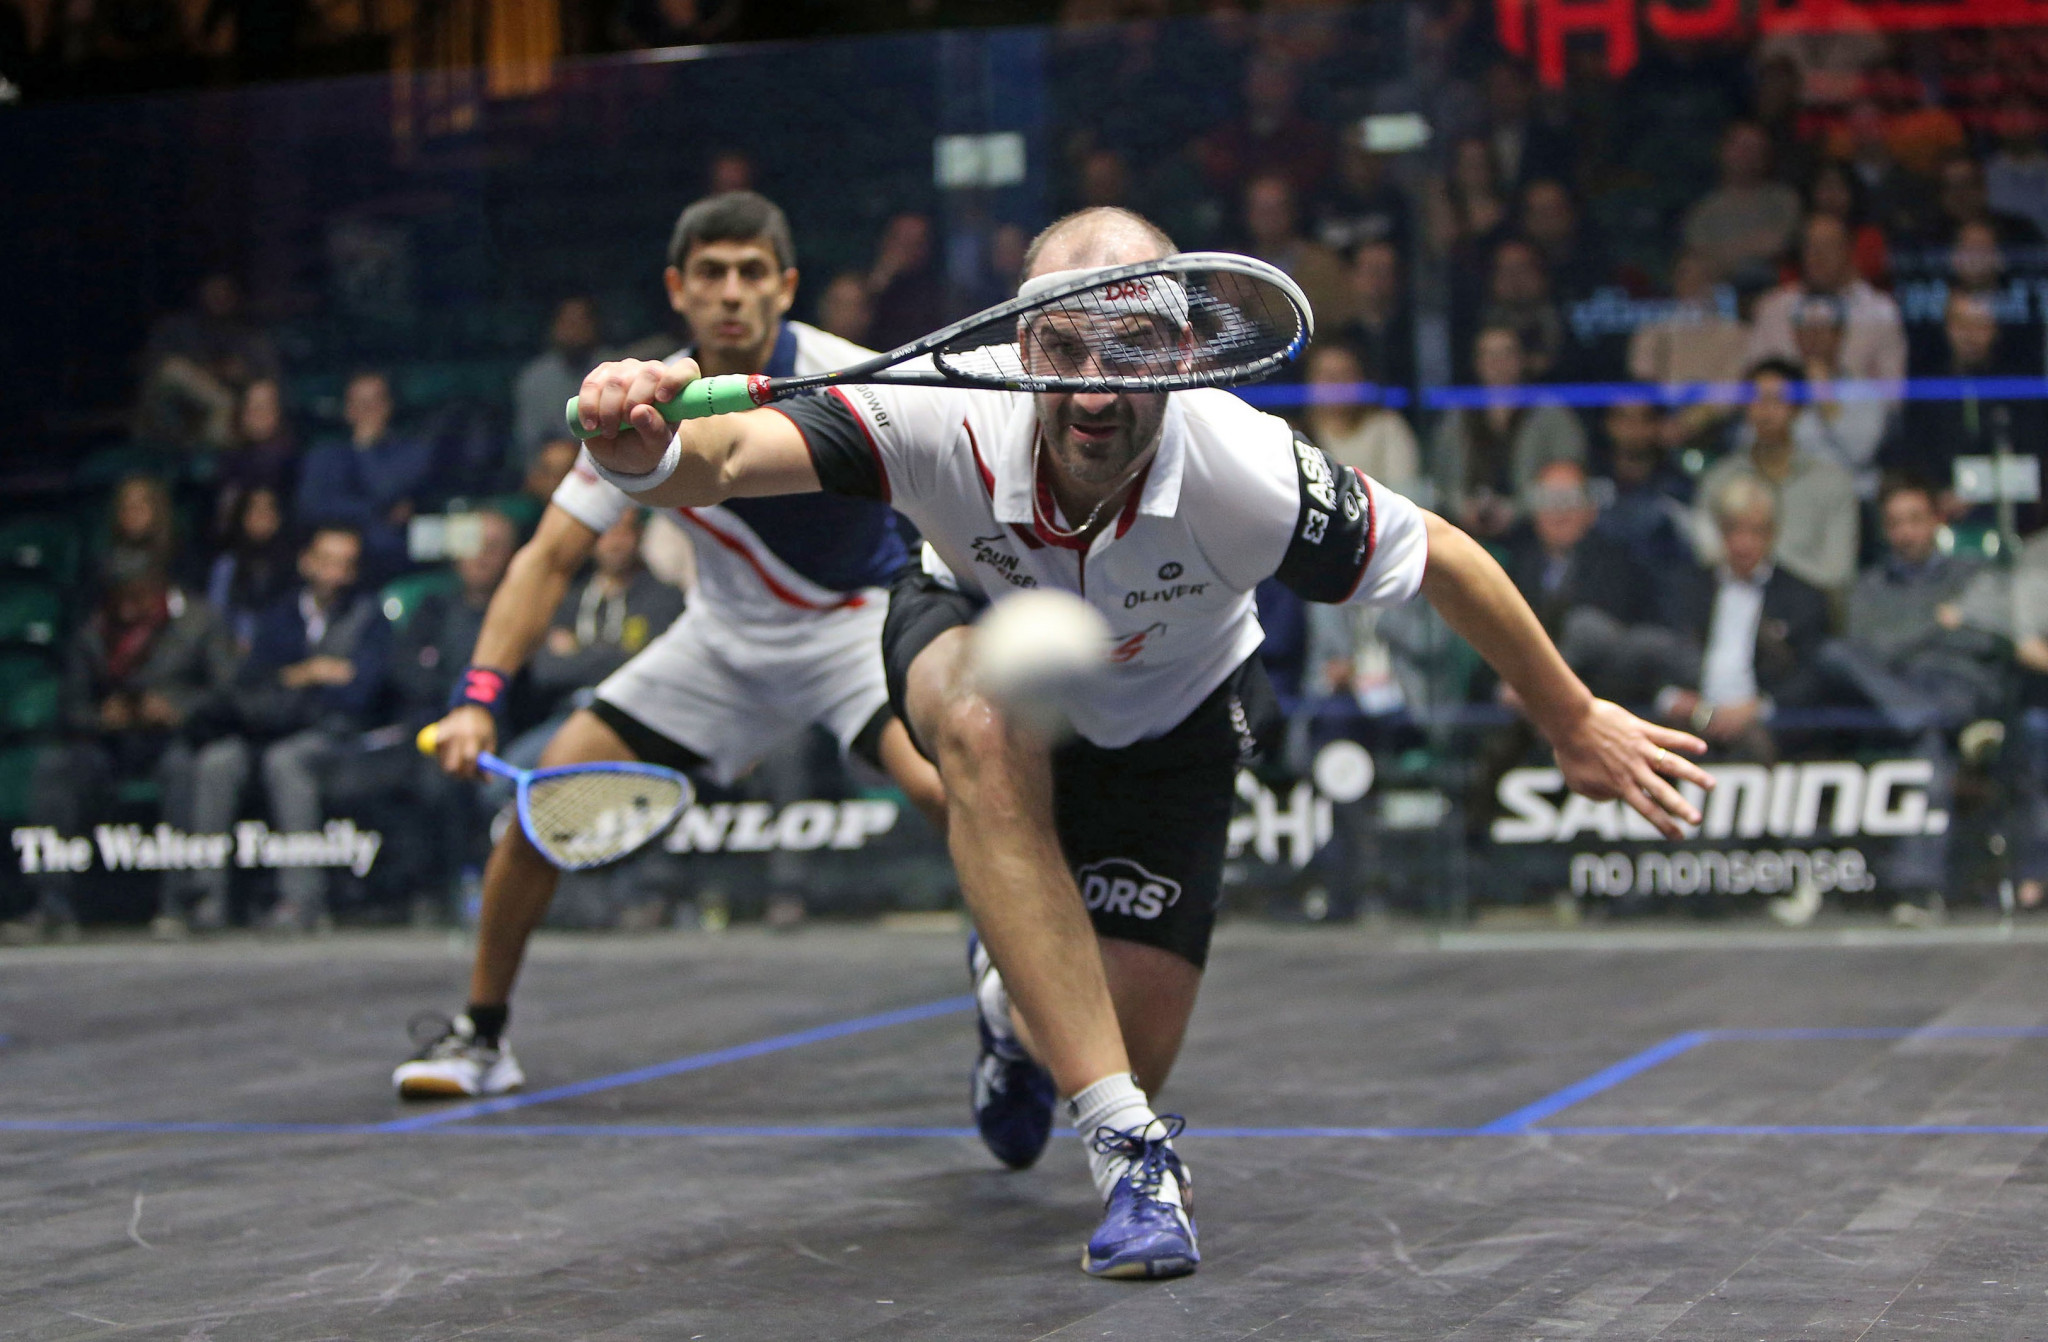 Rösner becomes first German to reach semi-finals of PSA World Championships